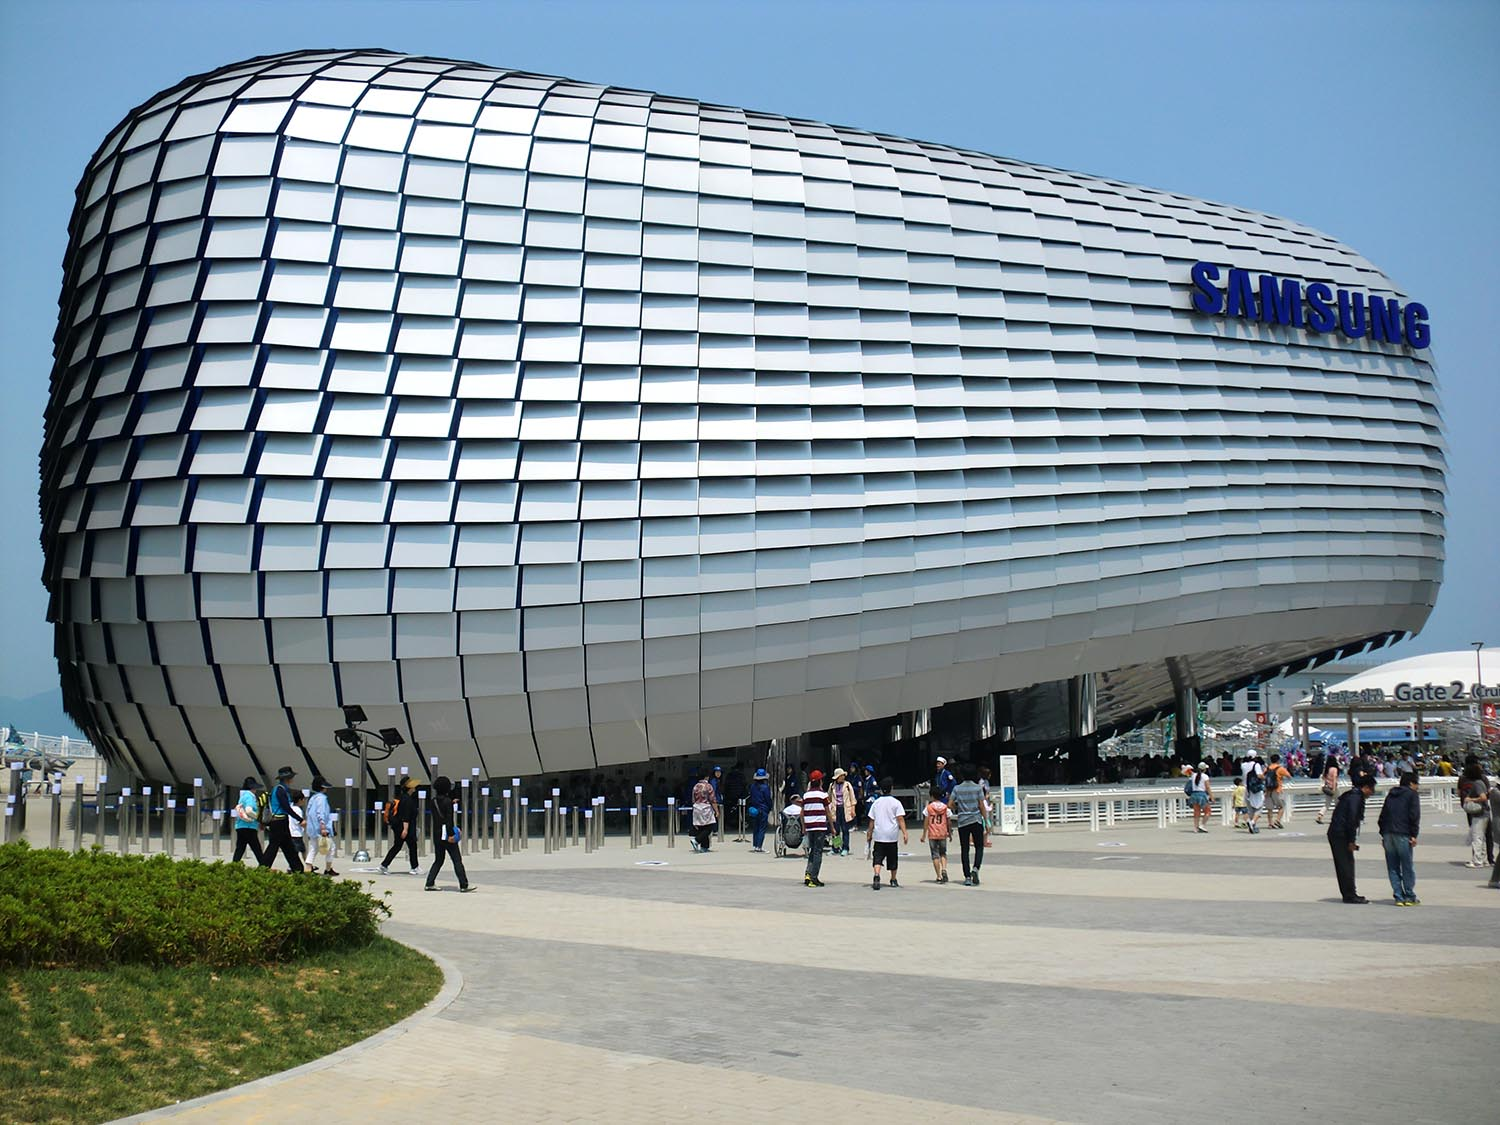 Samsung earnings guidance October 13